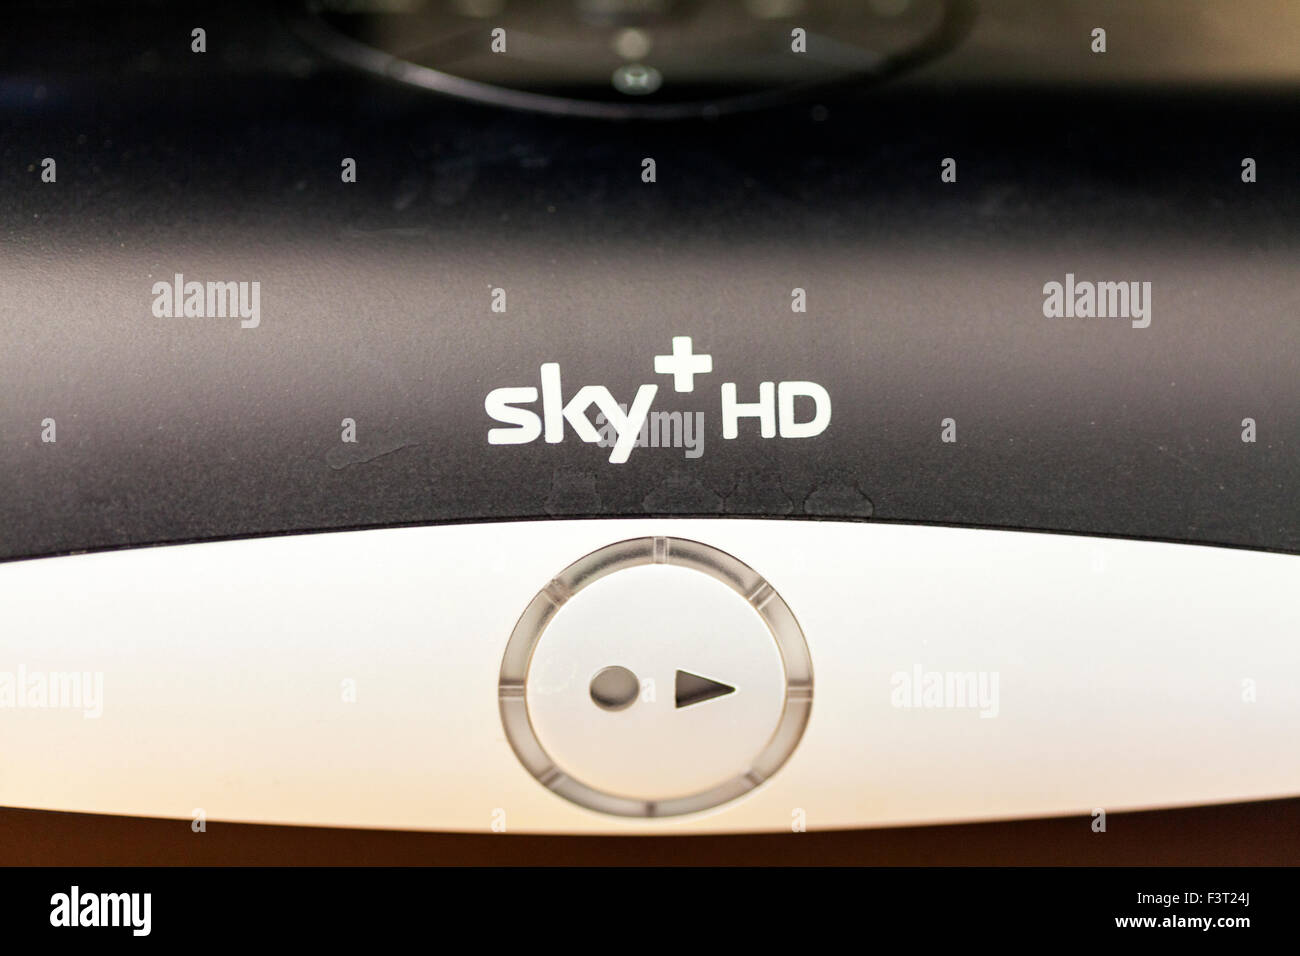 Box Sky HD TV televisione satellitare streaming box Sky+ bskyb Nome del logo Immagini Stock